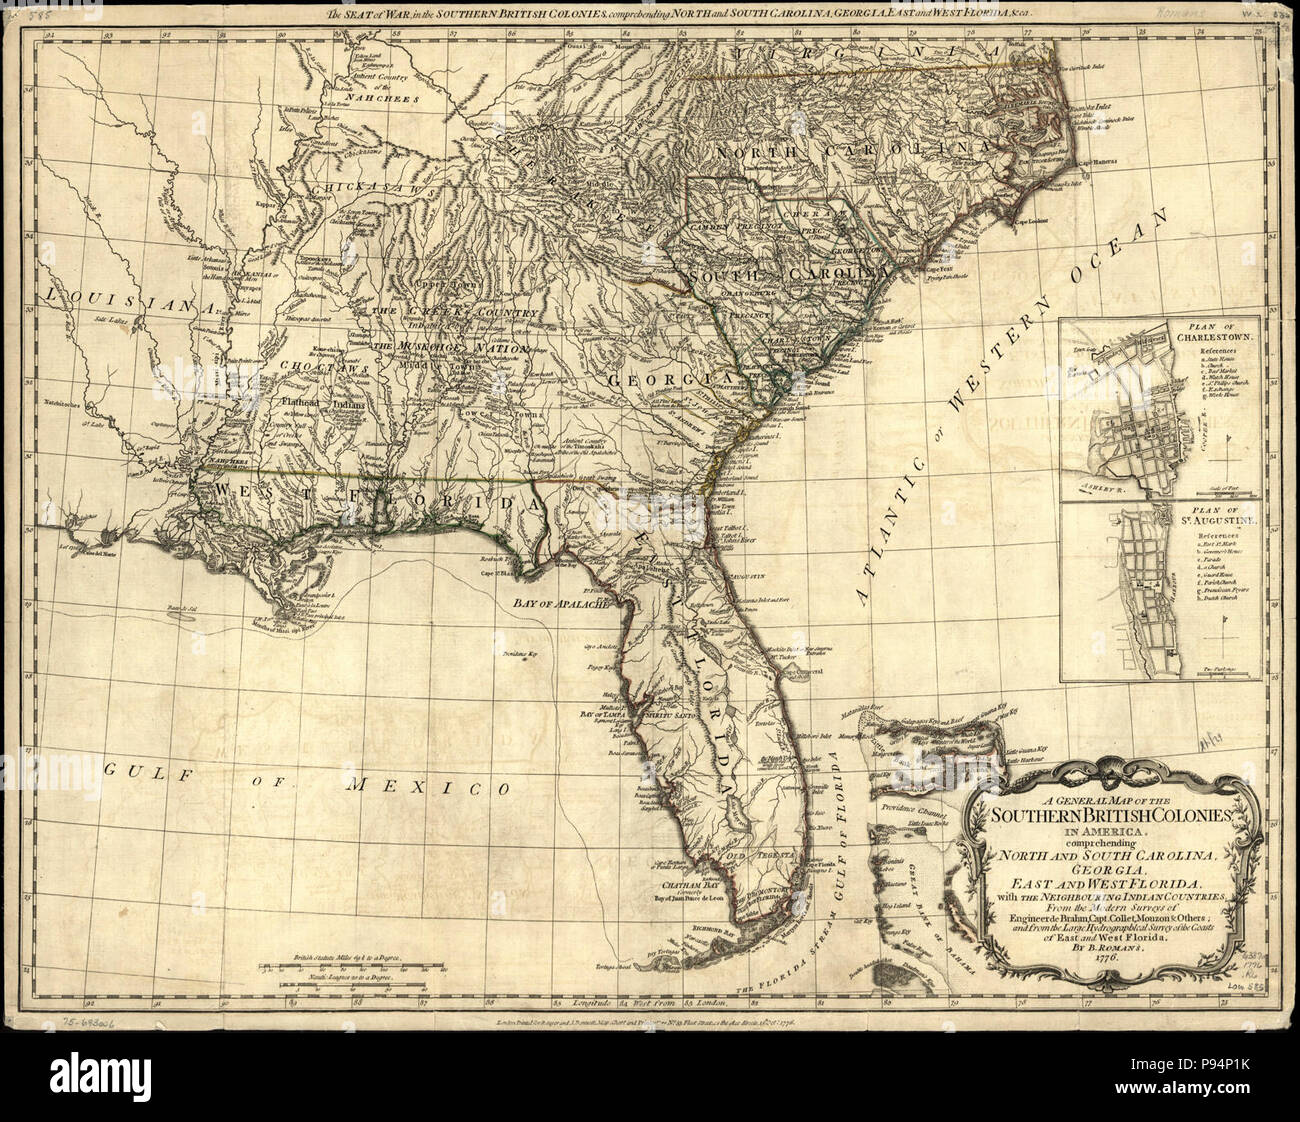 Map Of 75 South In Georgia.A General Map Of The Southern British Colonies In America